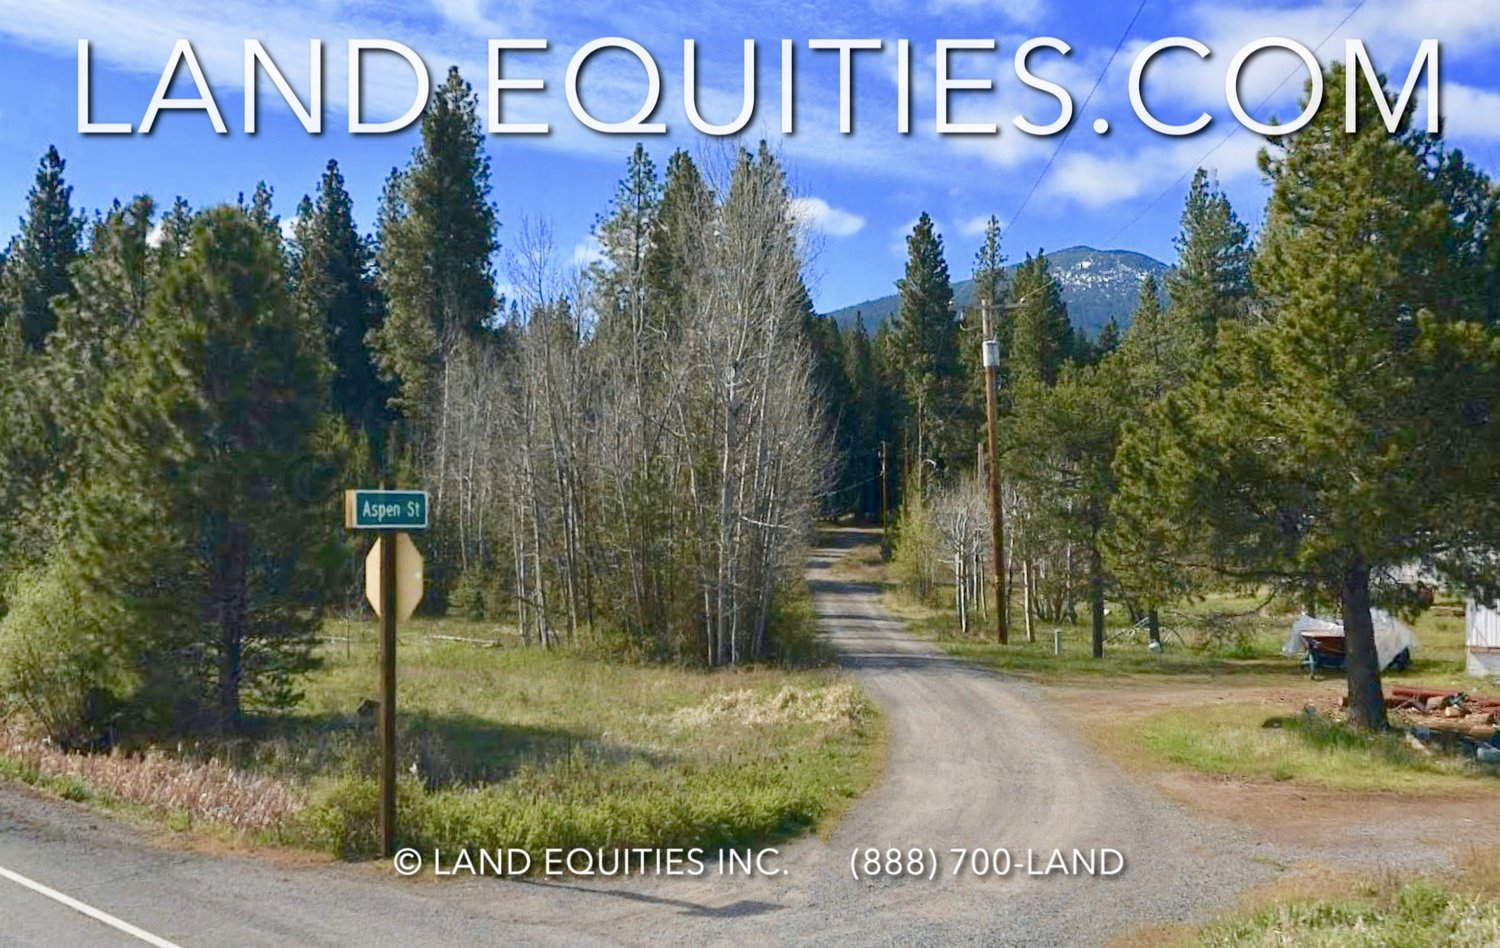 LAND EQUITIES — BEAUTIFUL 1 91 ACRE PROPERTY SURROUNDED BY NATIONAL FOREST  AND LAKES, HWY 140 ROCKY POINT, OR